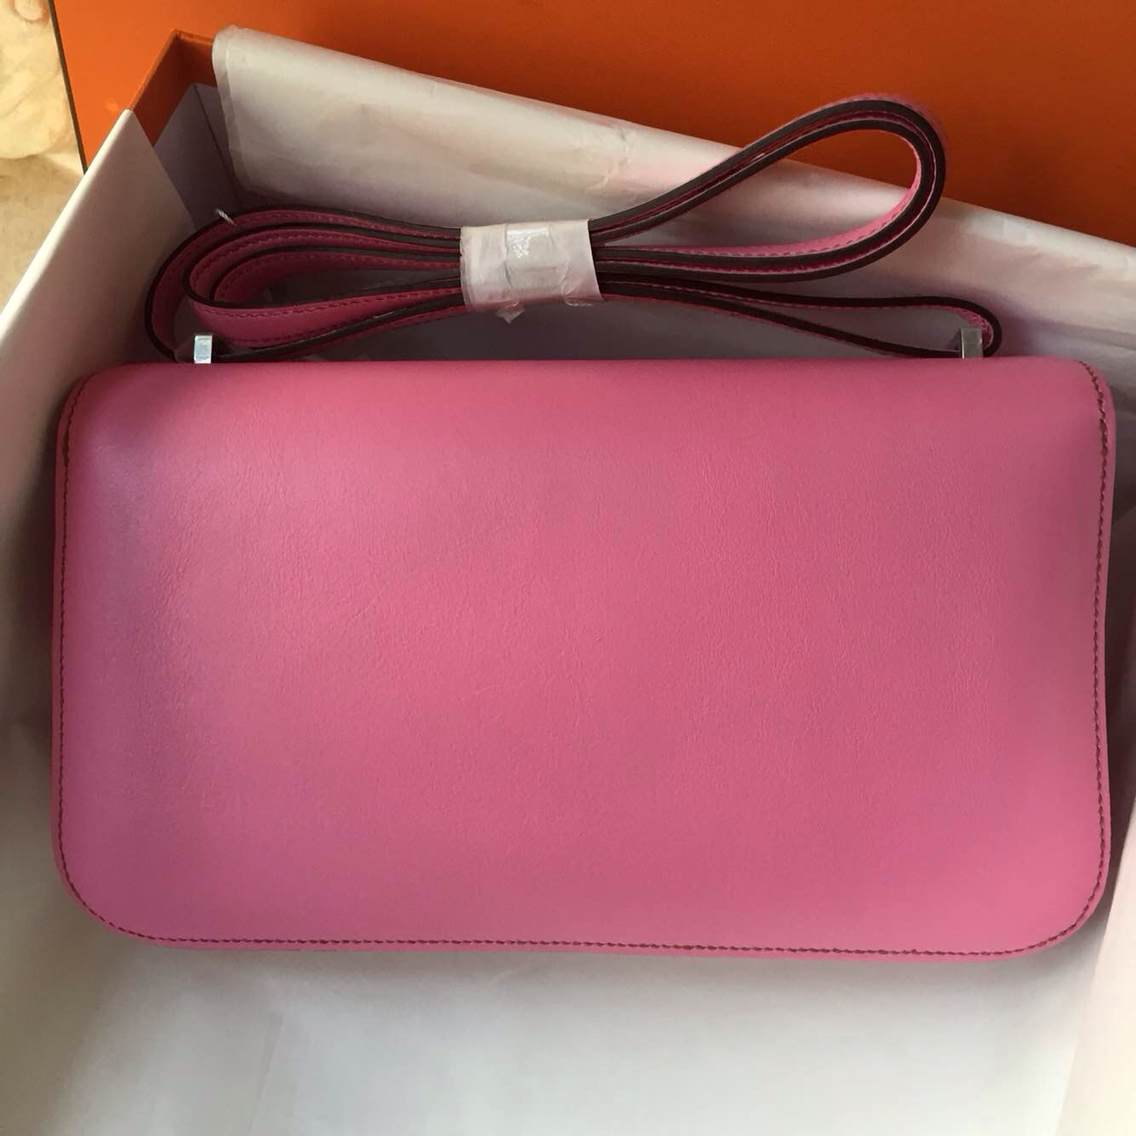 26cm Hermes Constance elan 5P Pink Swift Leather Cross-body Bag Silver Hardware